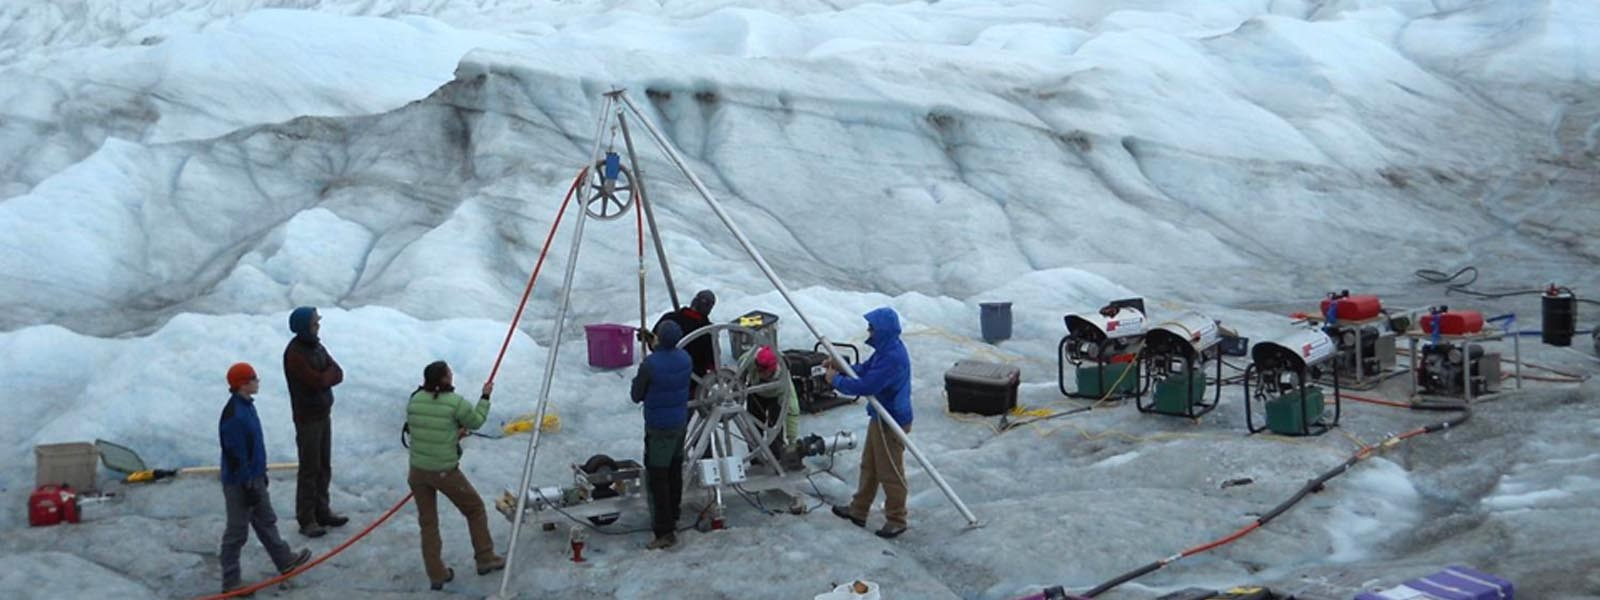 Working in the ice-fields of Greenland : GAP (Greenland Analogue Project) View More